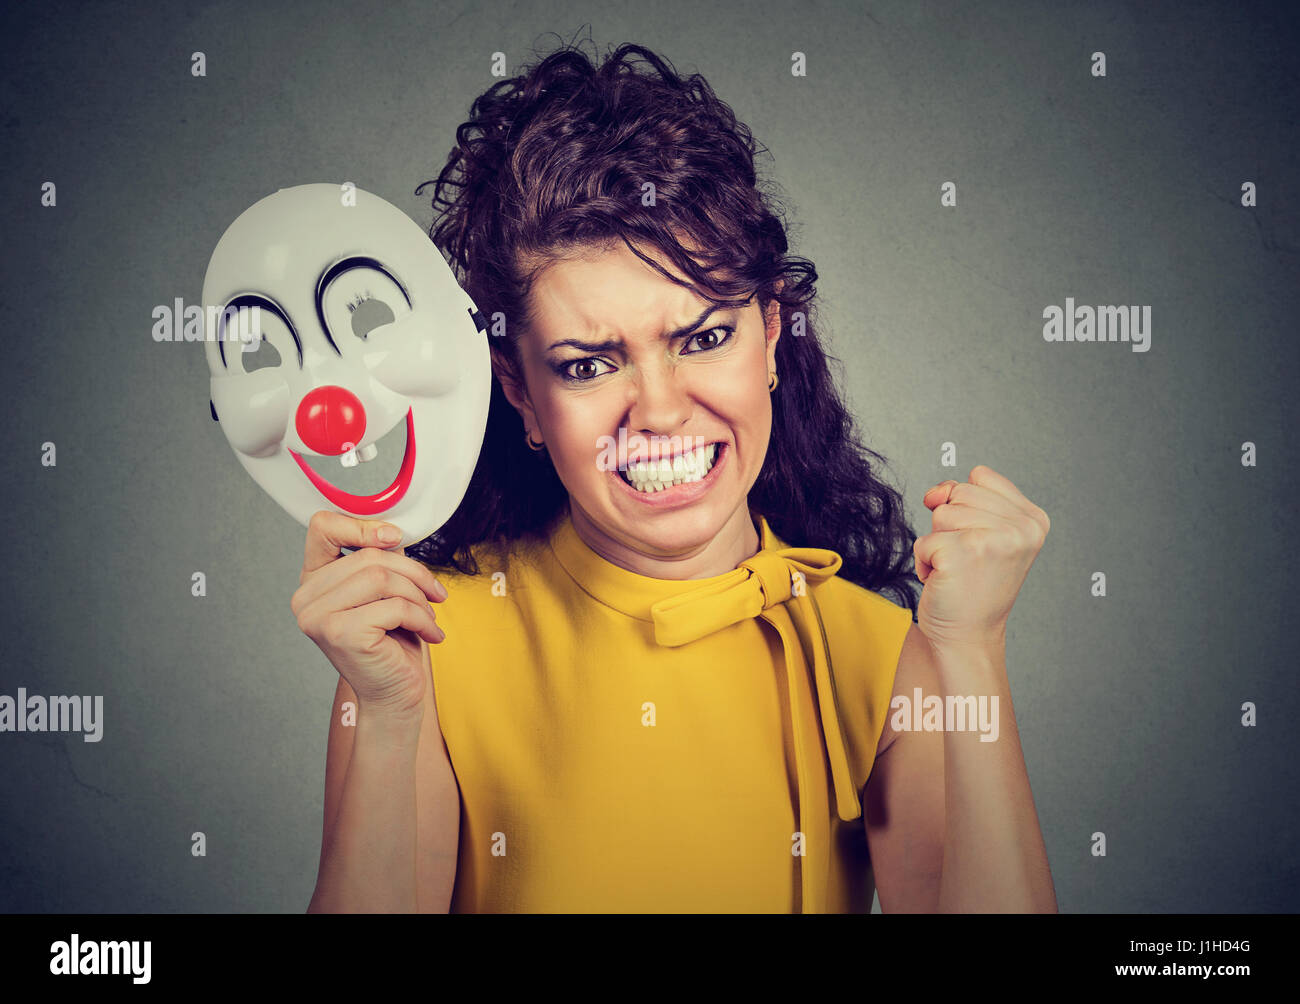 Portrait angry screaming woman taking off a clown mask expressing happiness isolated on gray wall background. Human Stock Photo